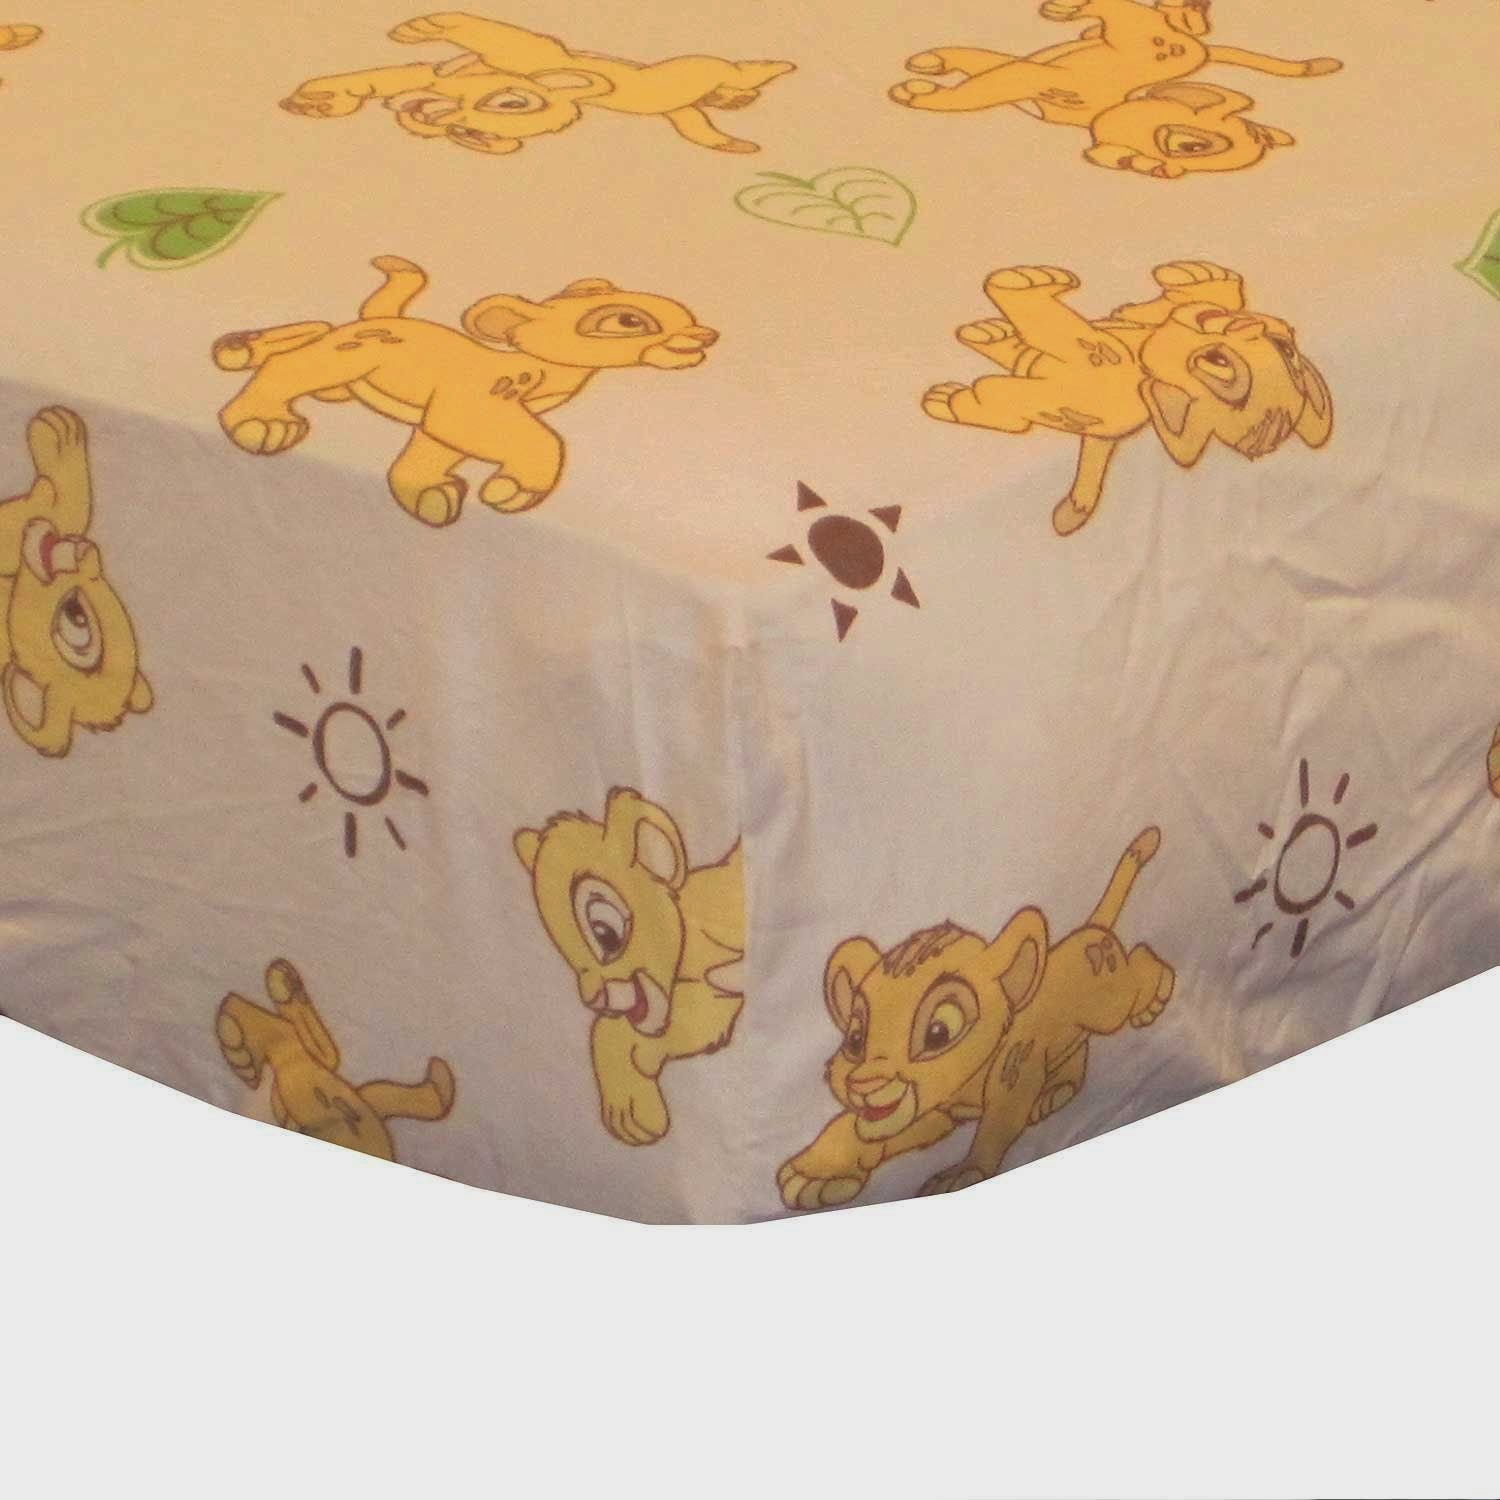 The Right On Mom Vegan Mom Blog Lion King Baby Nursery